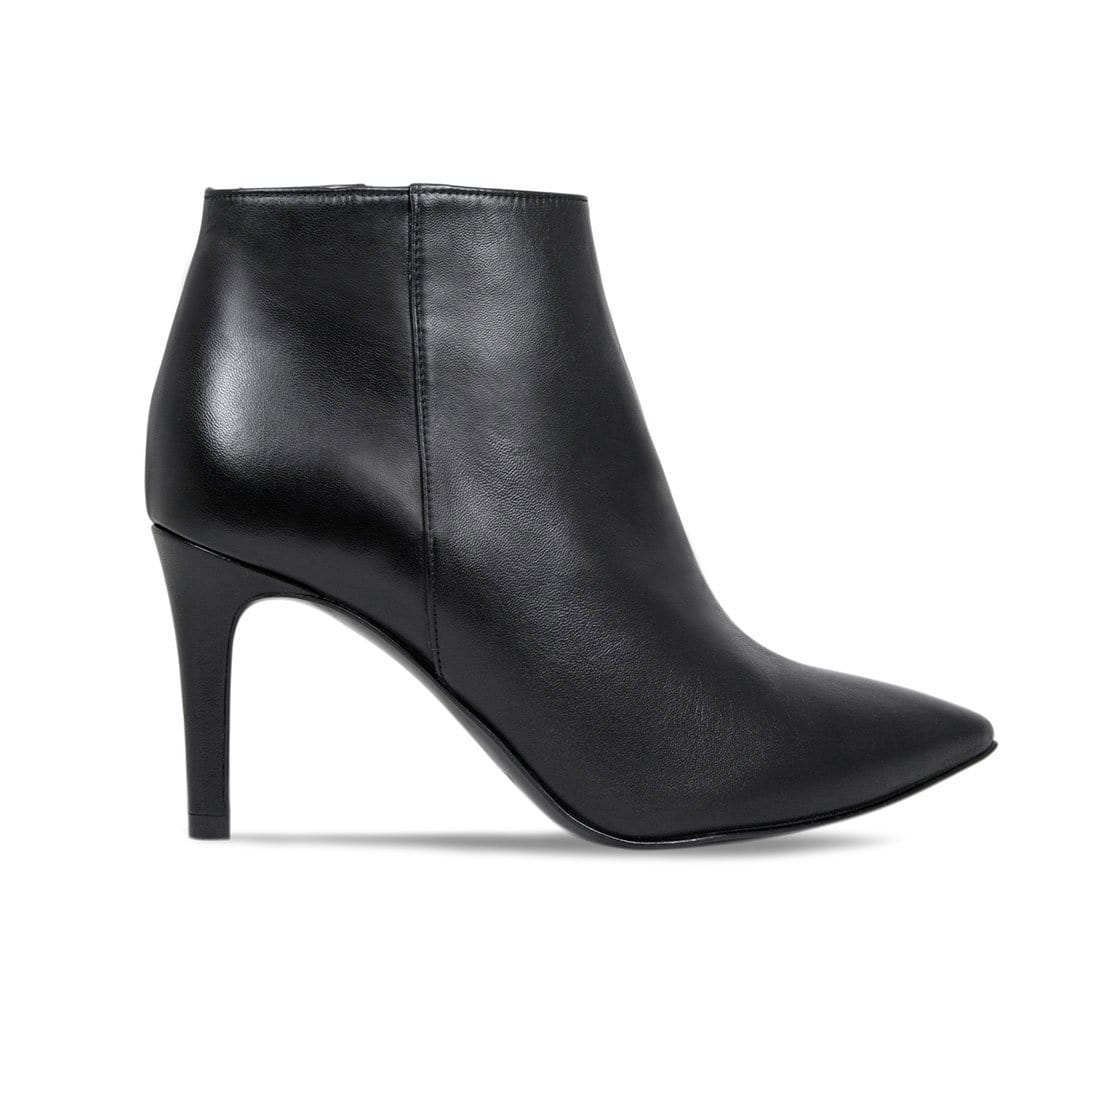 Black Leather High Heeled Ankle Booties